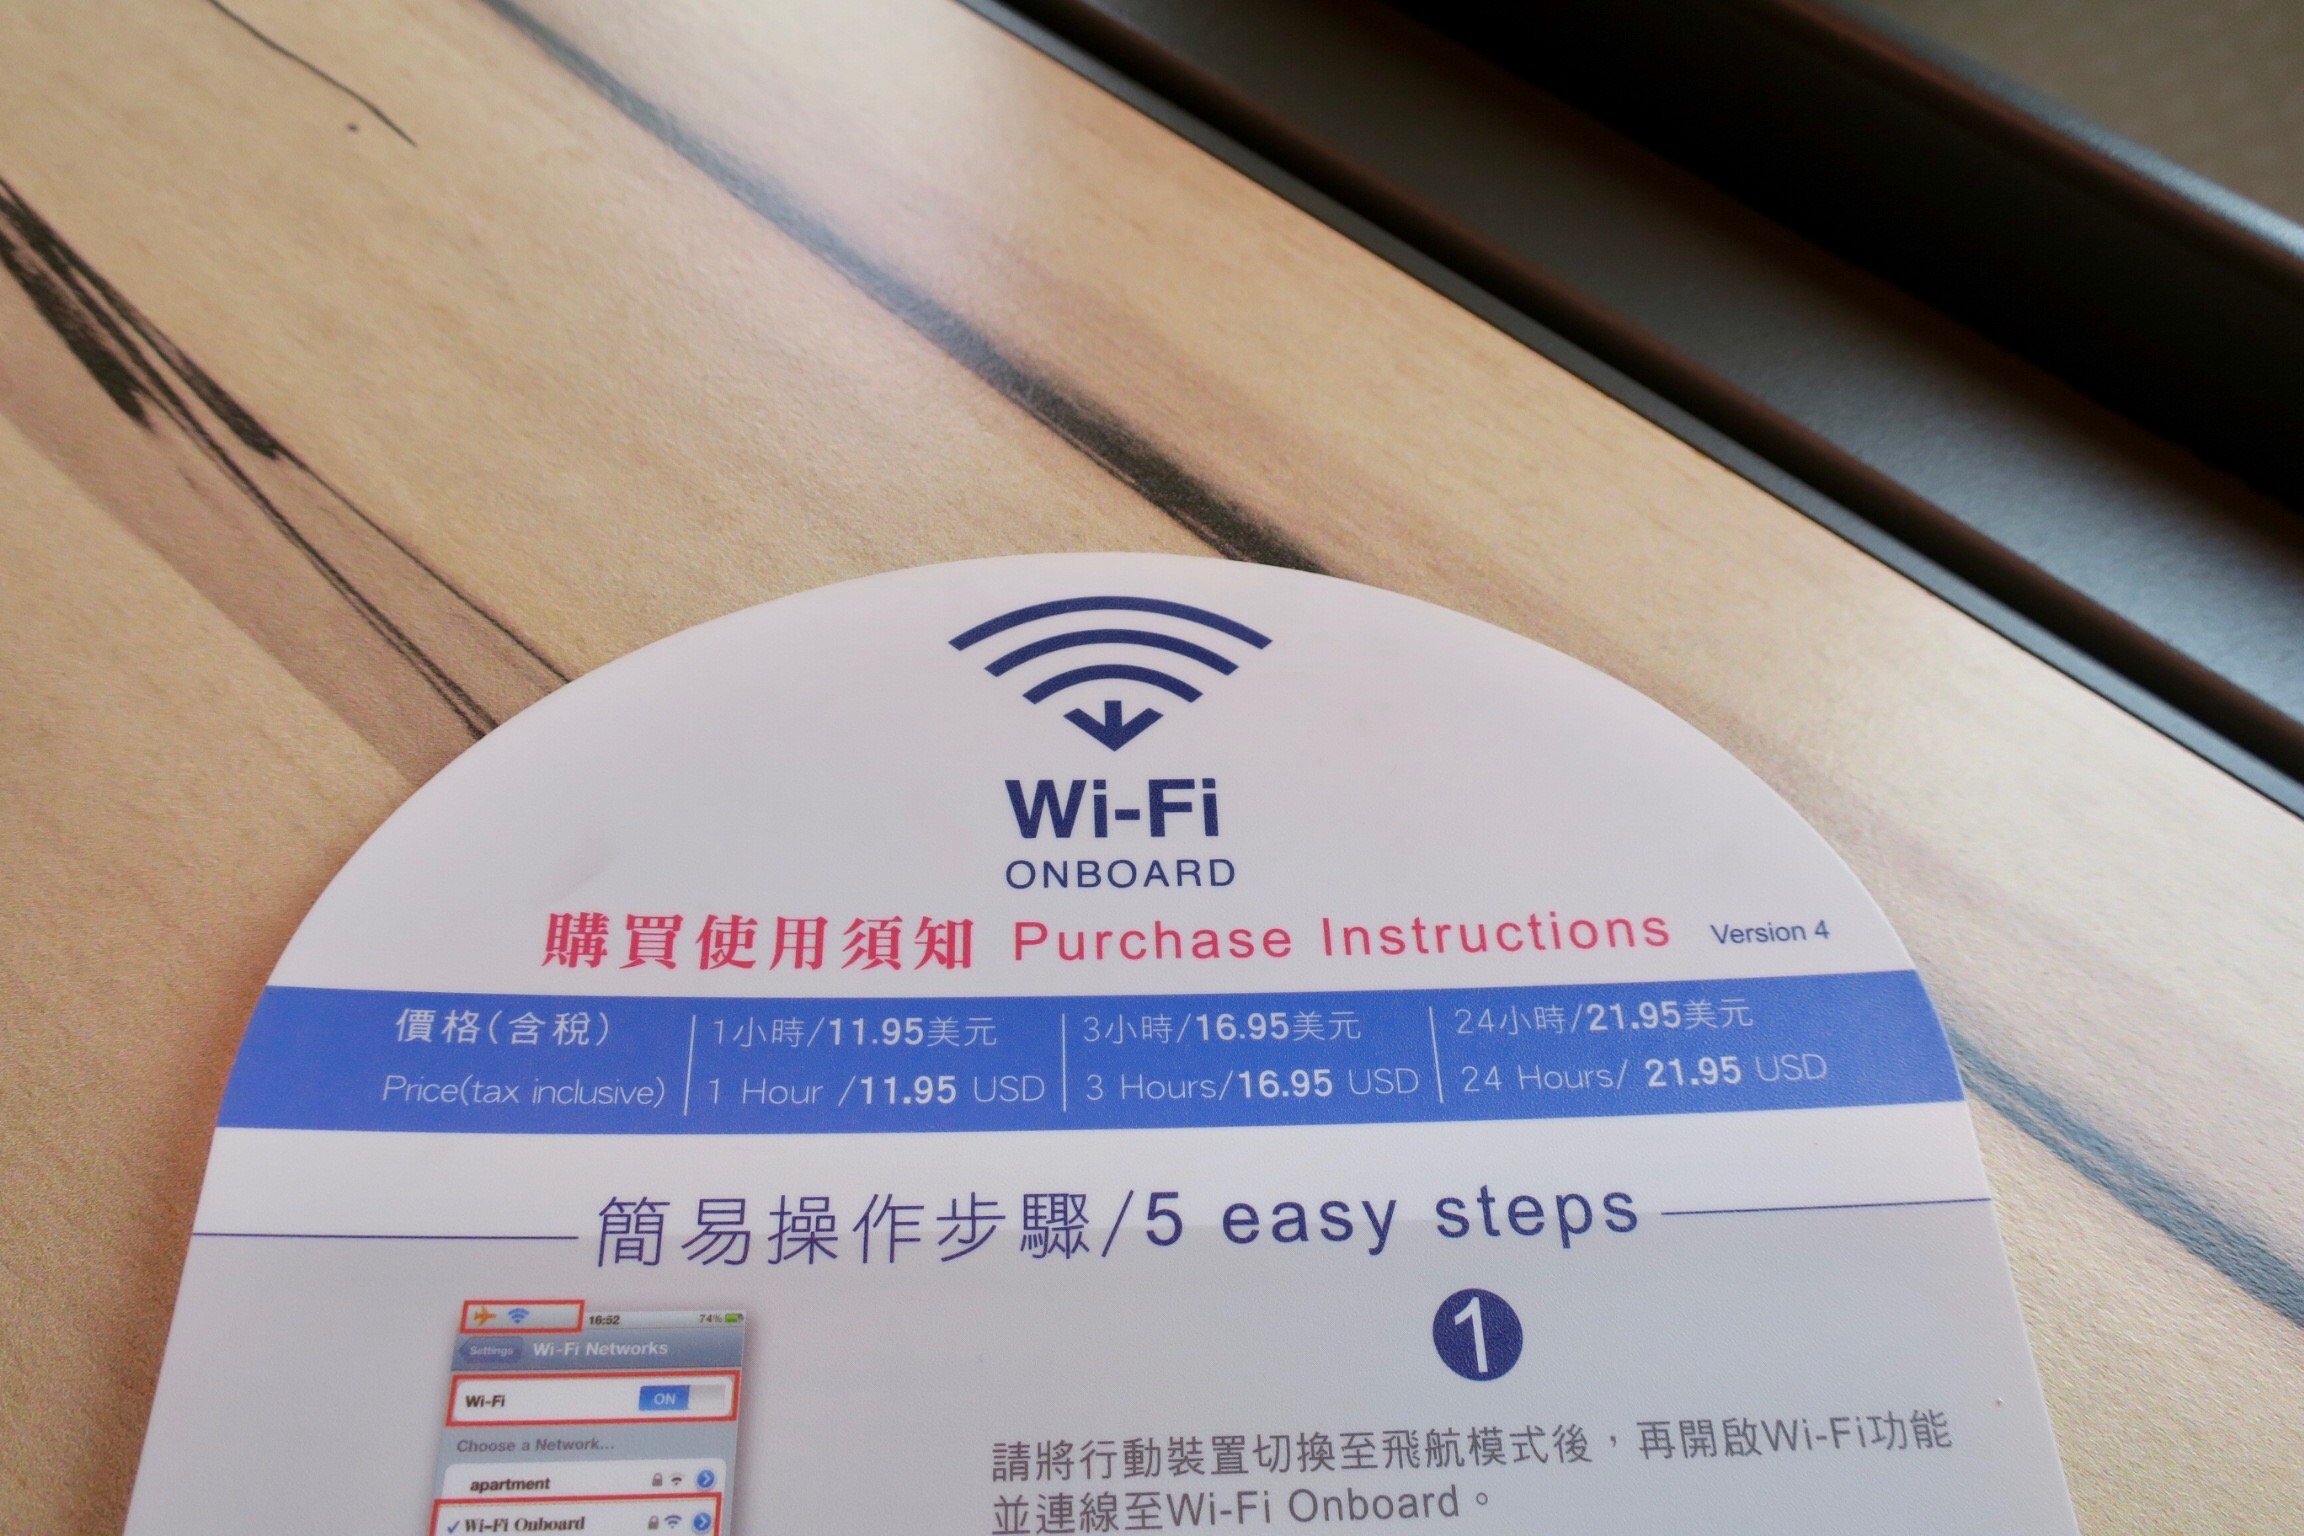 China Airlines onboard wifi purchase instruction